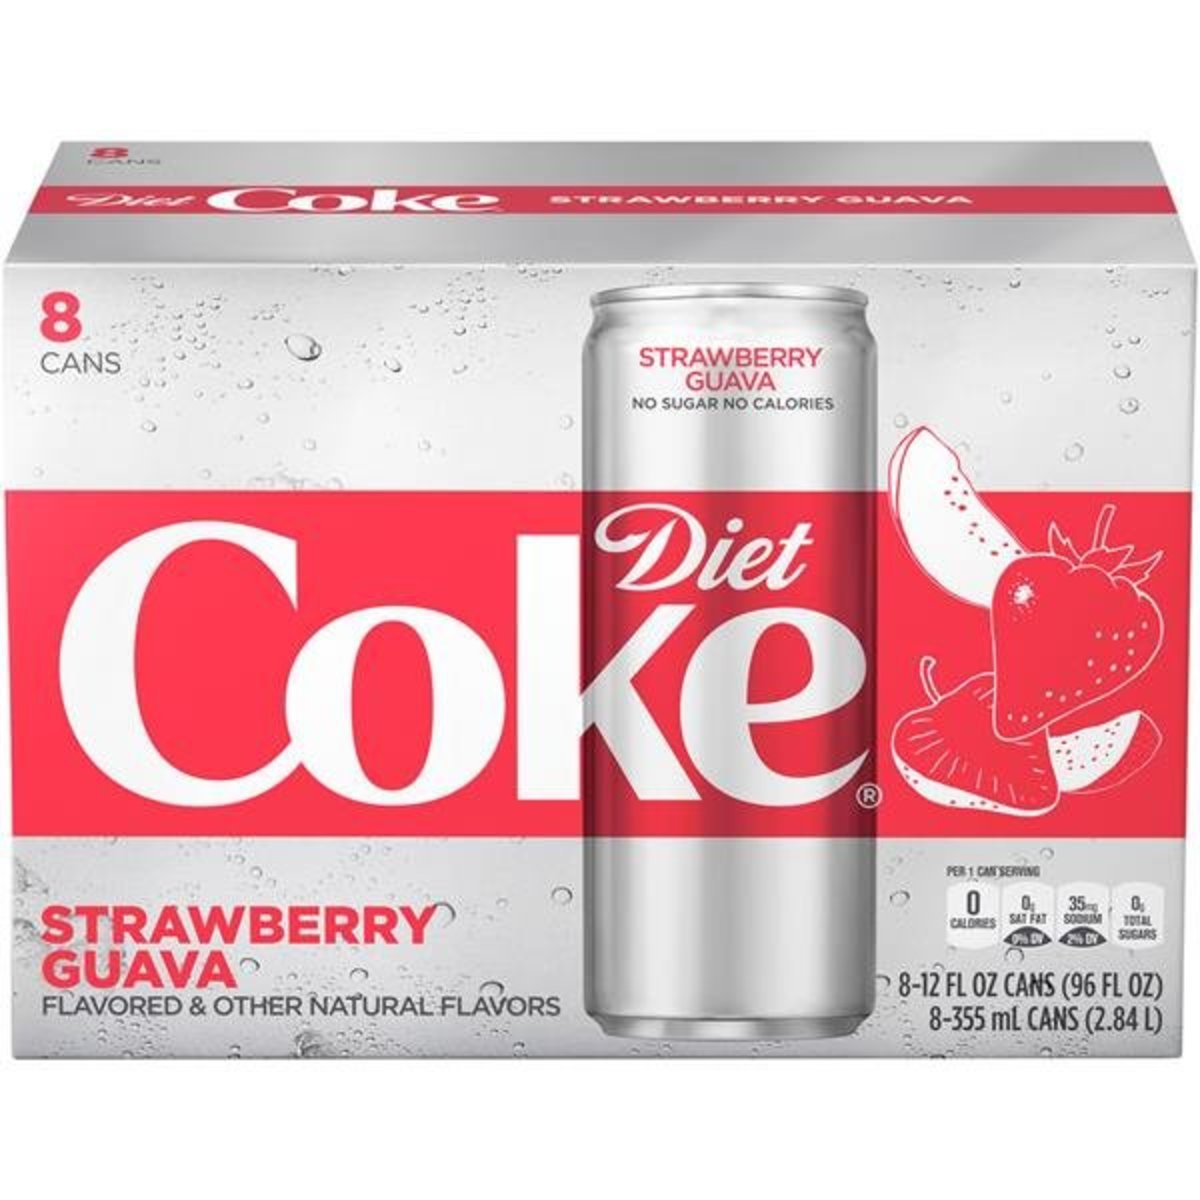 Diet Coke Strawberry Guava 355 ml x 8